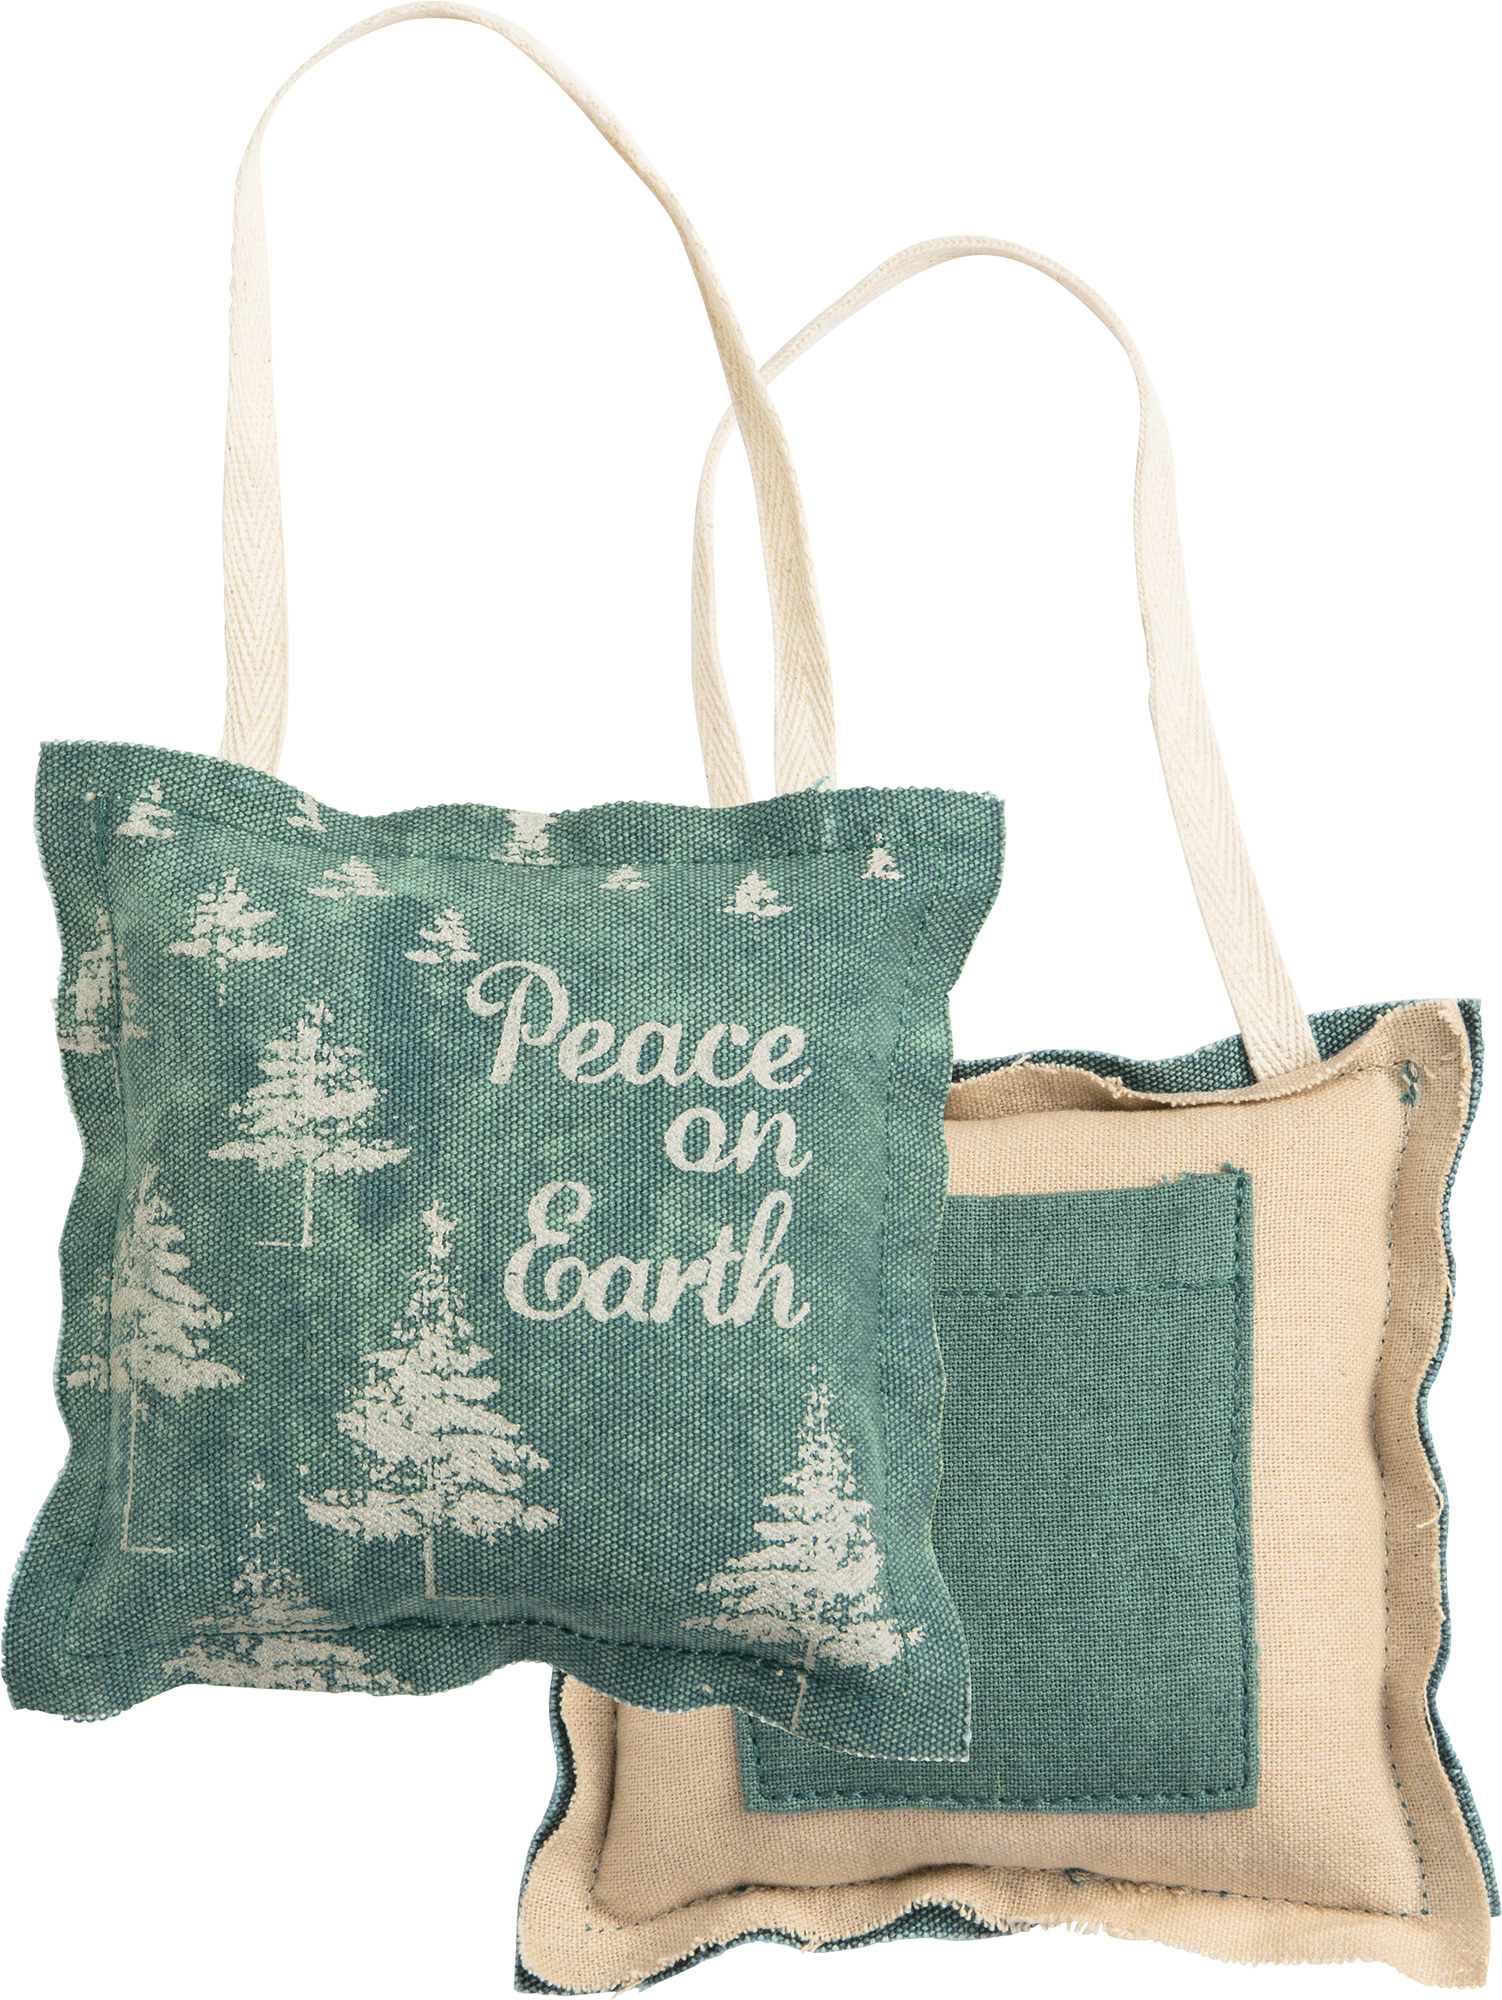 Peace On Earth Mini Pillow $9